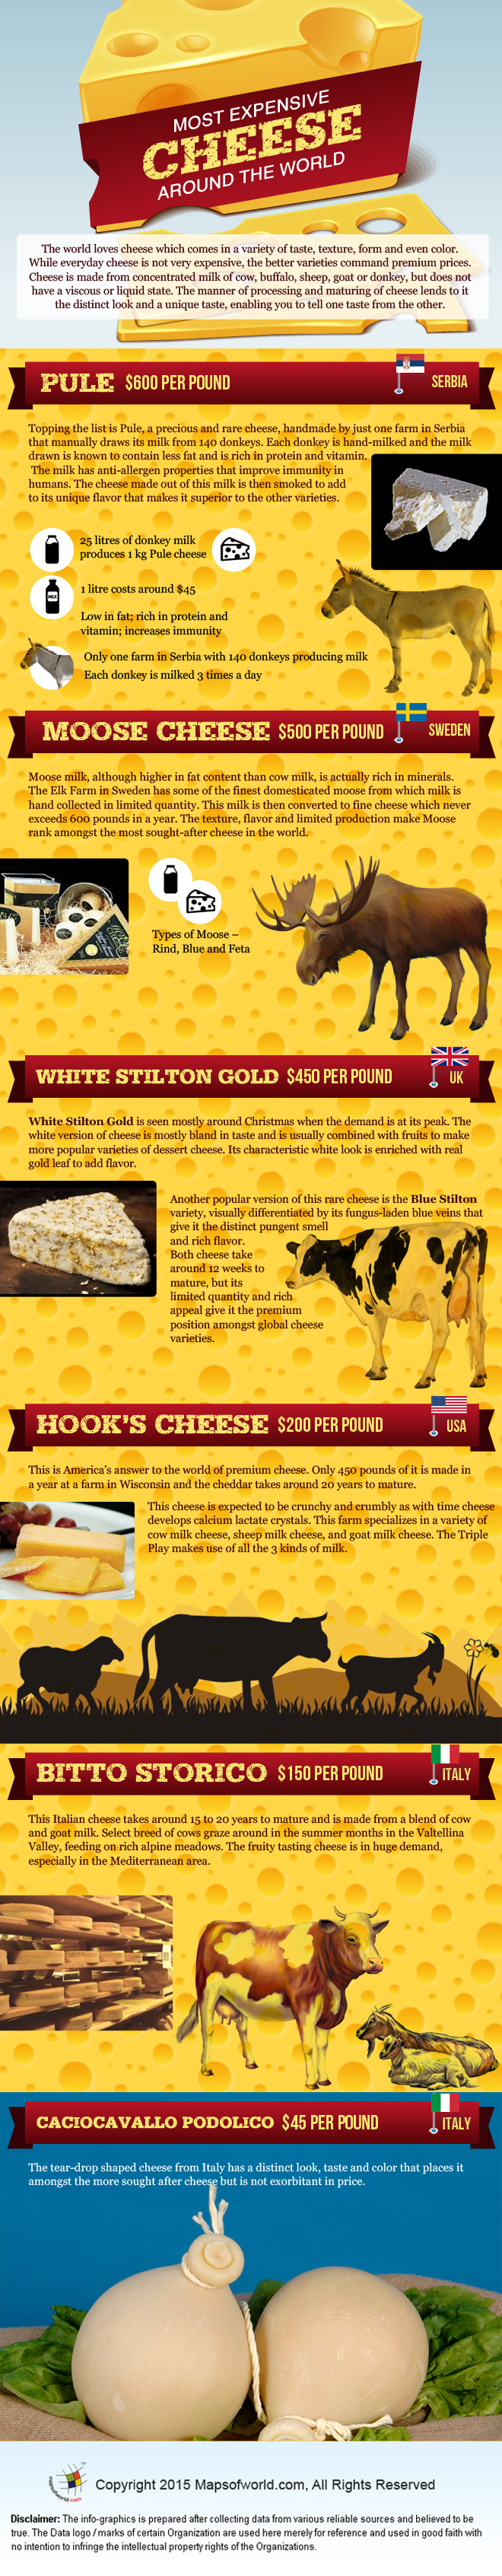 Infographics on Most Expensive Cheese around the World